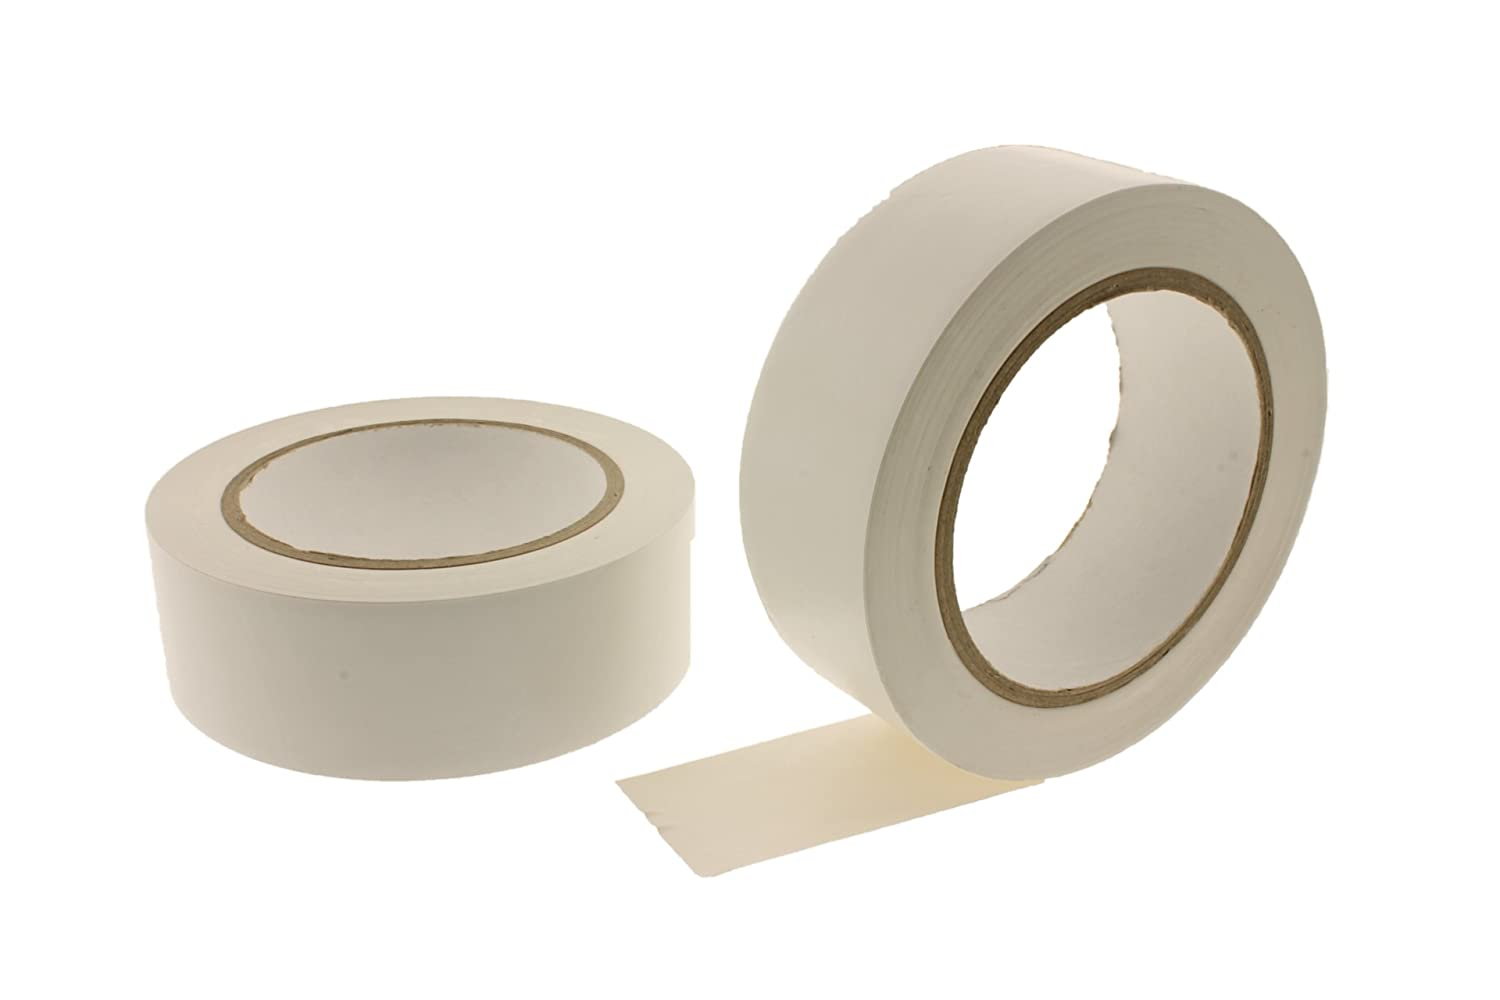 2pk 1.5 WHITE Durable Rubber Adhesive PVC Vinyl Sealing Coding Warning OSHA Caution Marking Safety Electrical Removable Floor Tape 1.42 in 36mm 36 yard 6 Mil